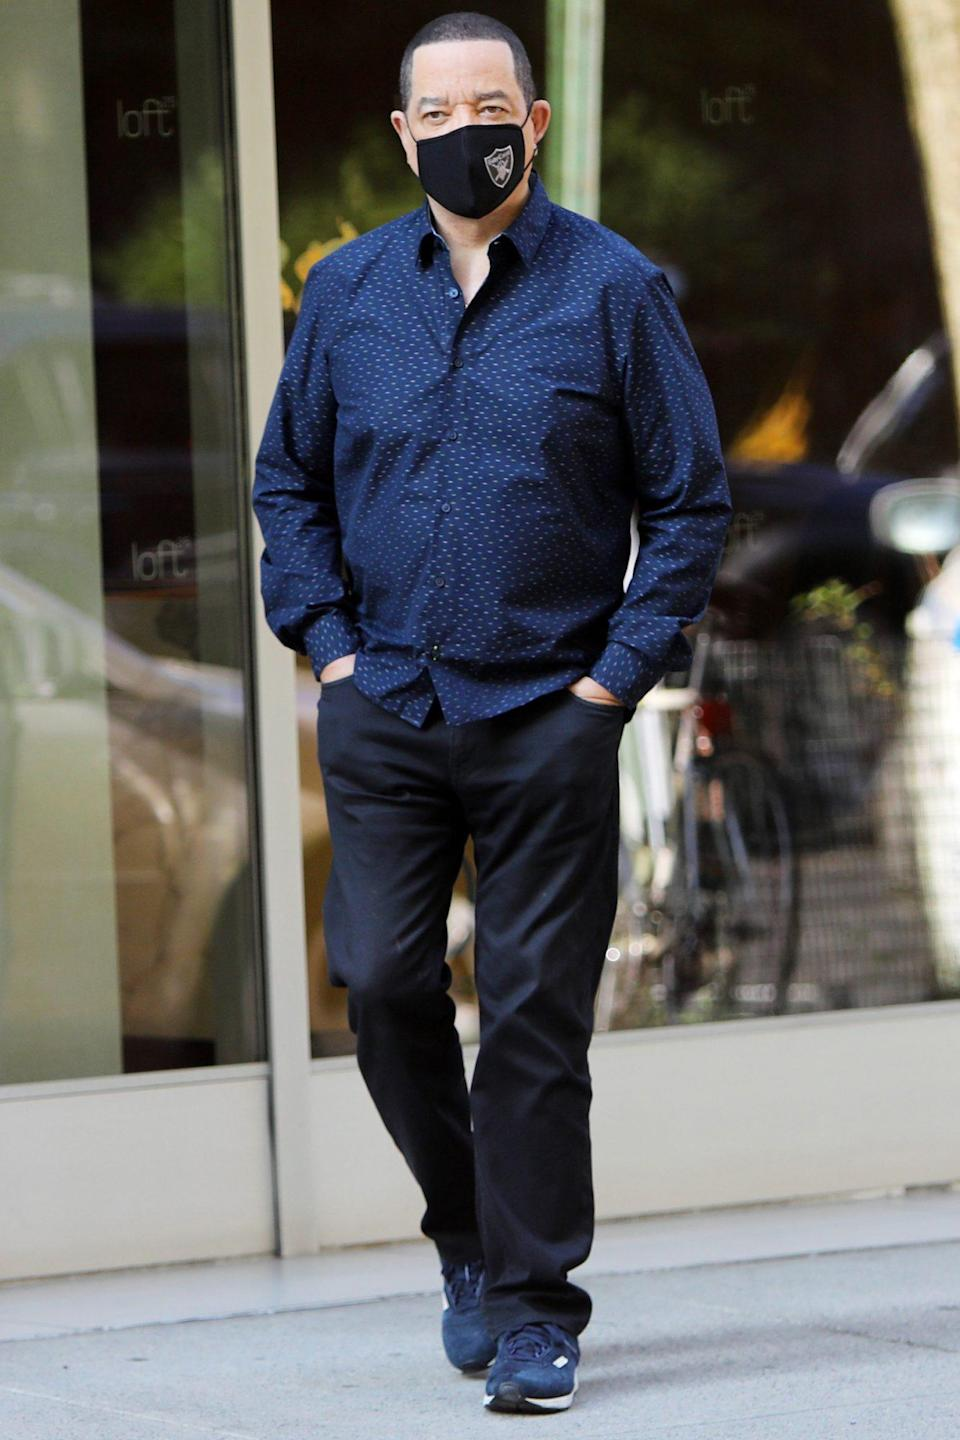 <p>Ice T steps out while on break from filming <em>Law and Order: SUV</em> on Friday in N.Y.C.'s Chelsea neighborhood.</p>